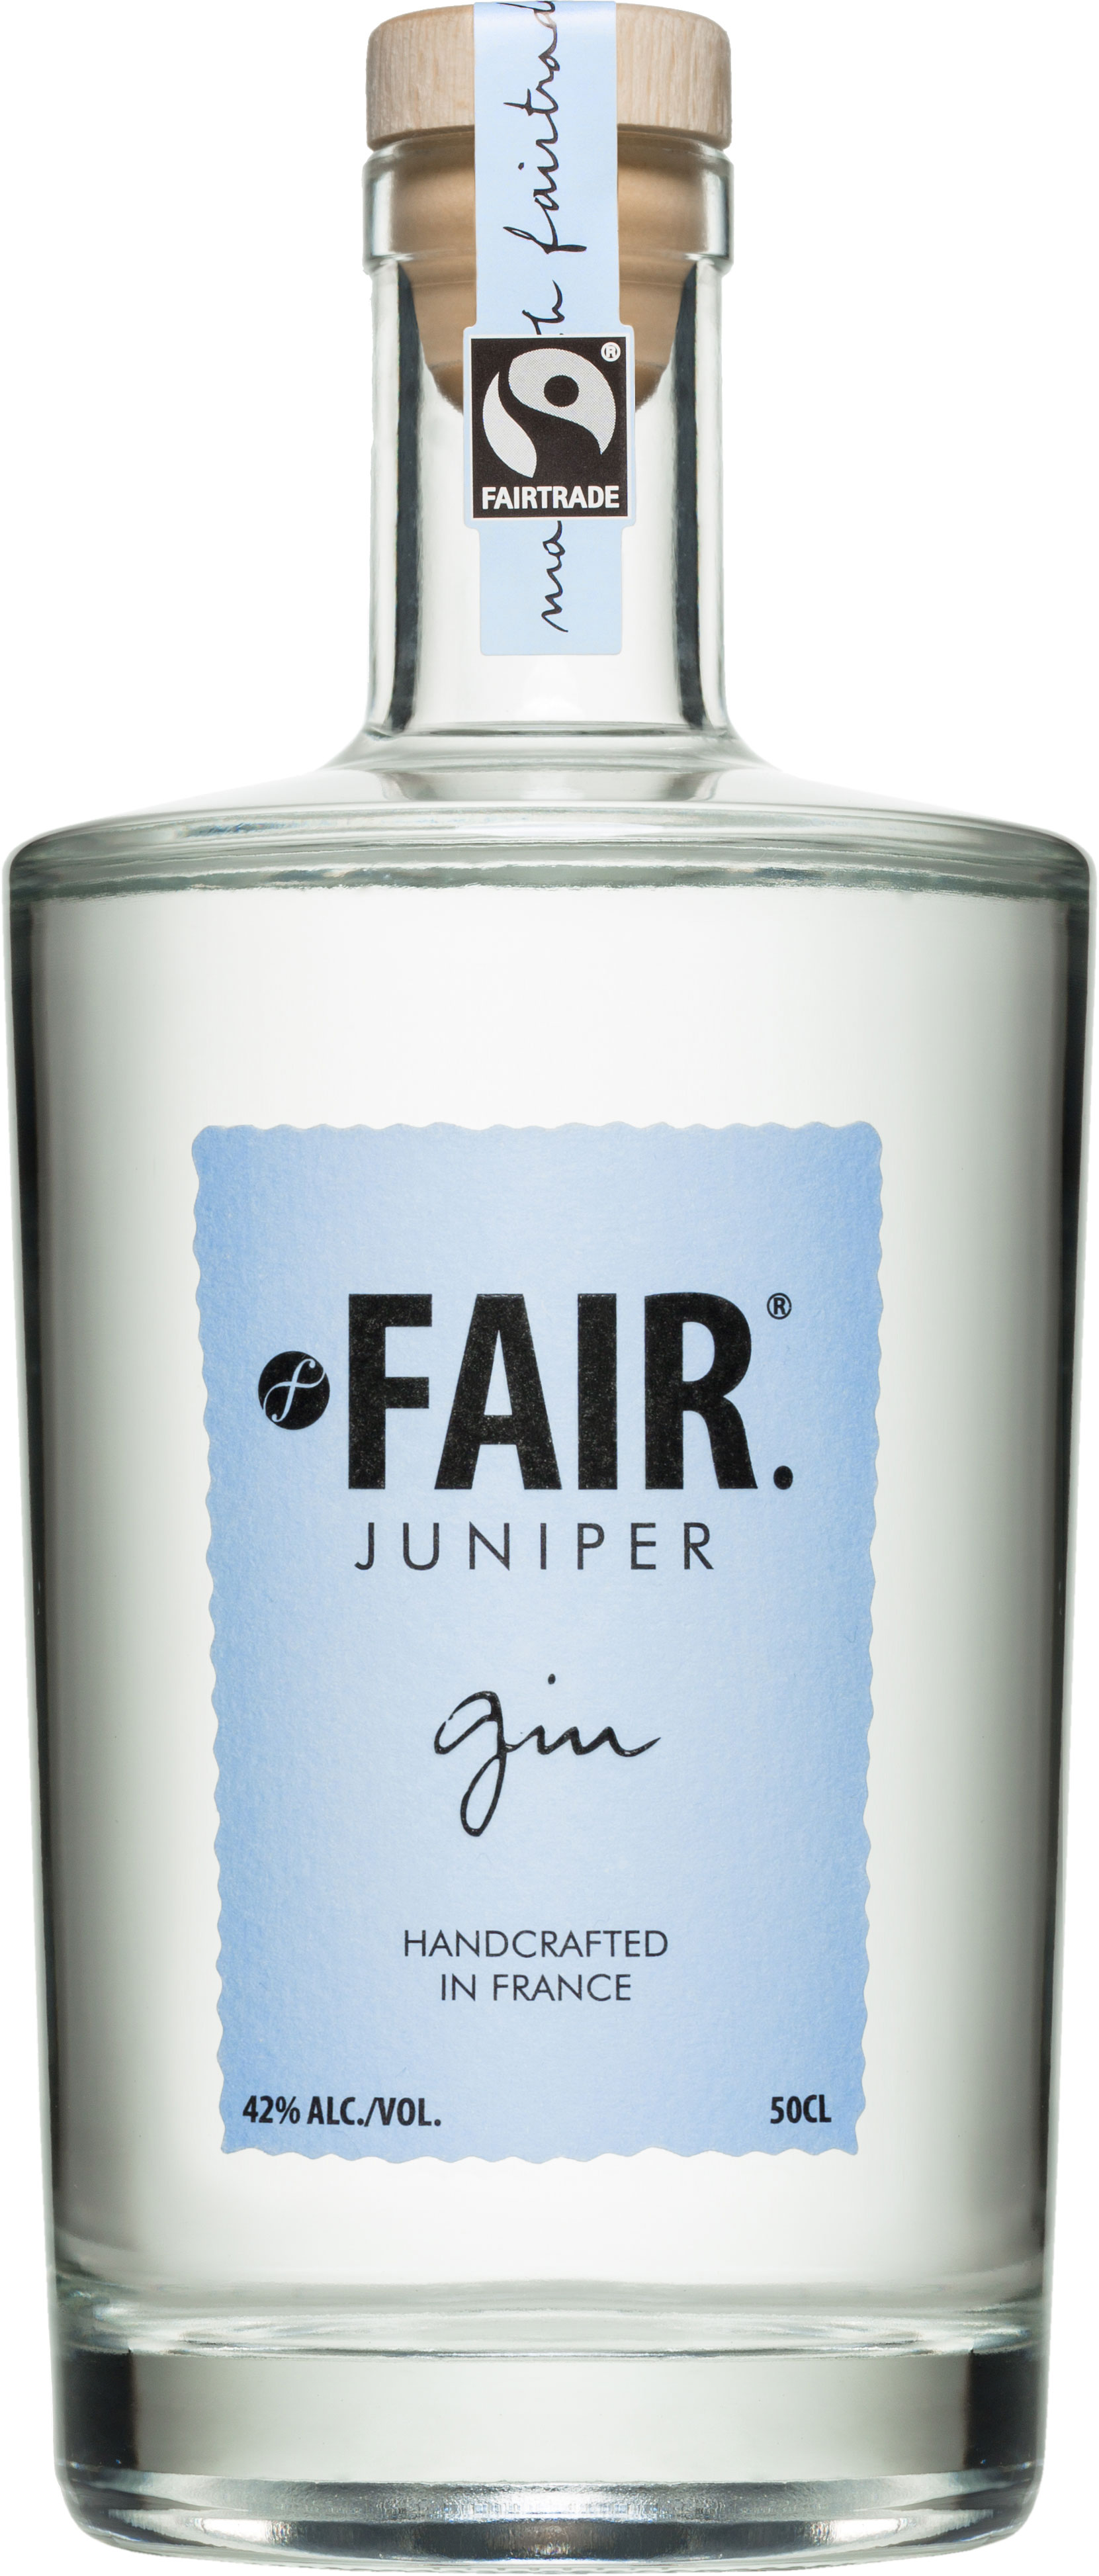 Fair - Juniper Gin 50cl Bottle